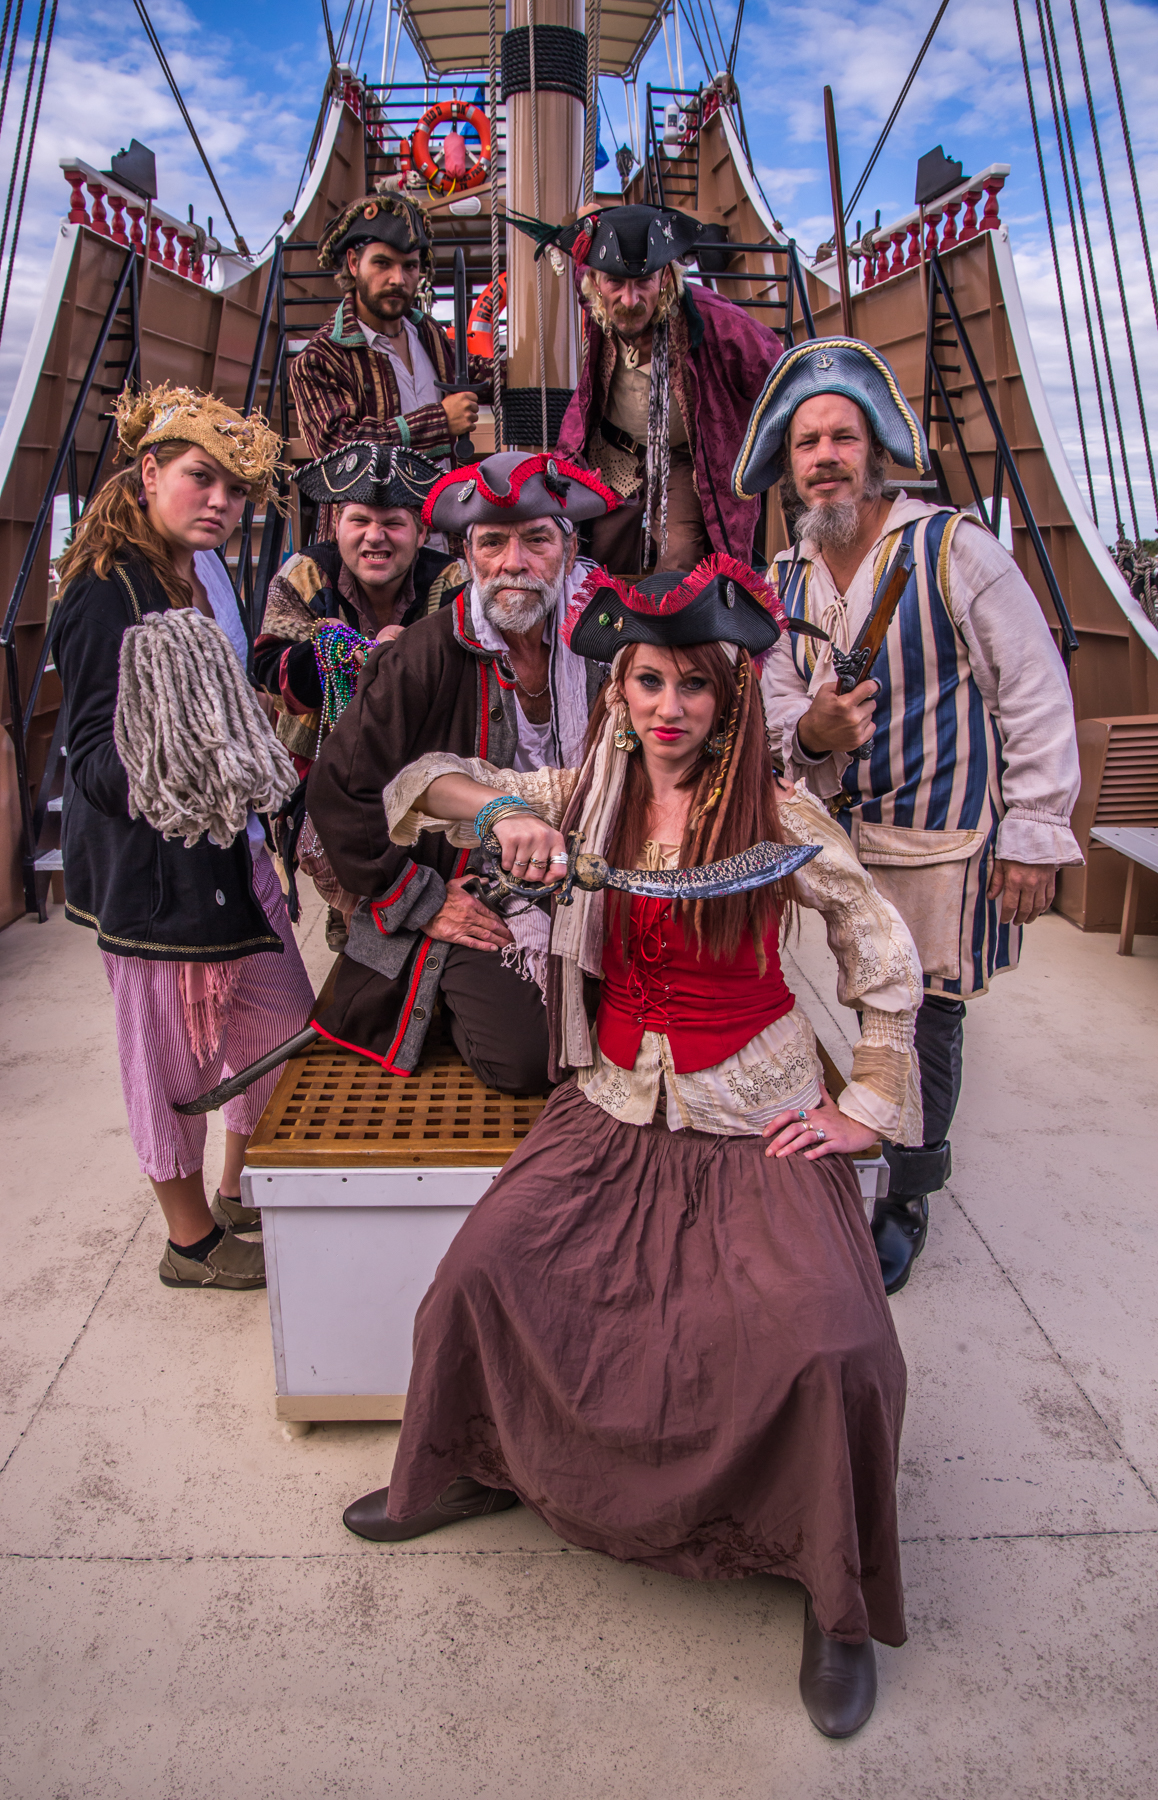 Pirate crew welcomes you aboard